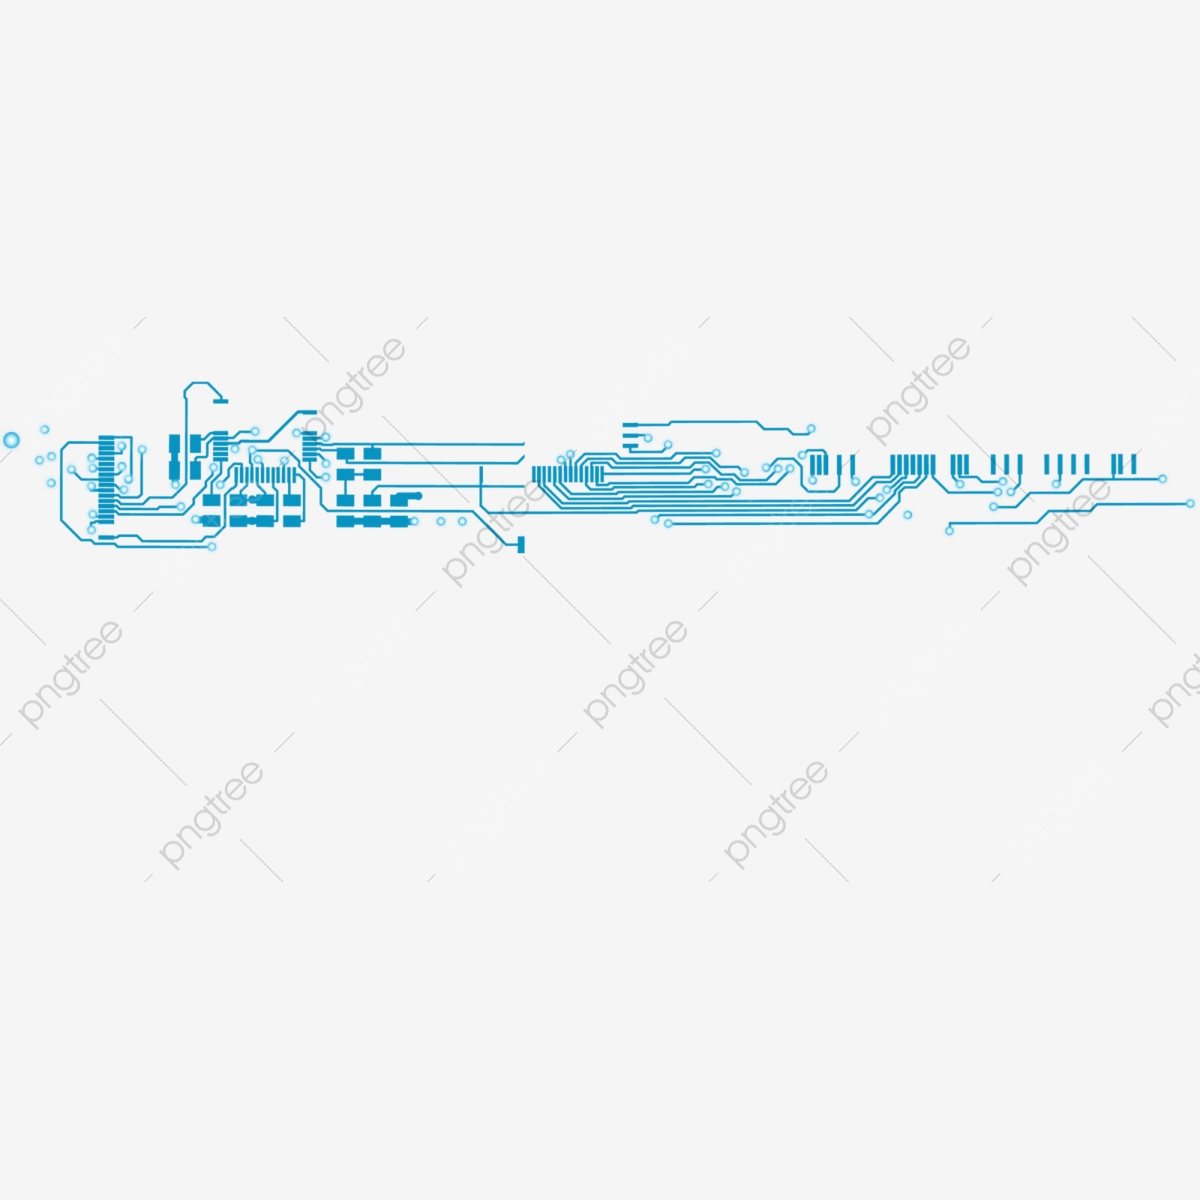 hight resolution of commercial use resource upgrade to premium plan and get license authorization upgradenow circuit board electronic component technology circuit diagram